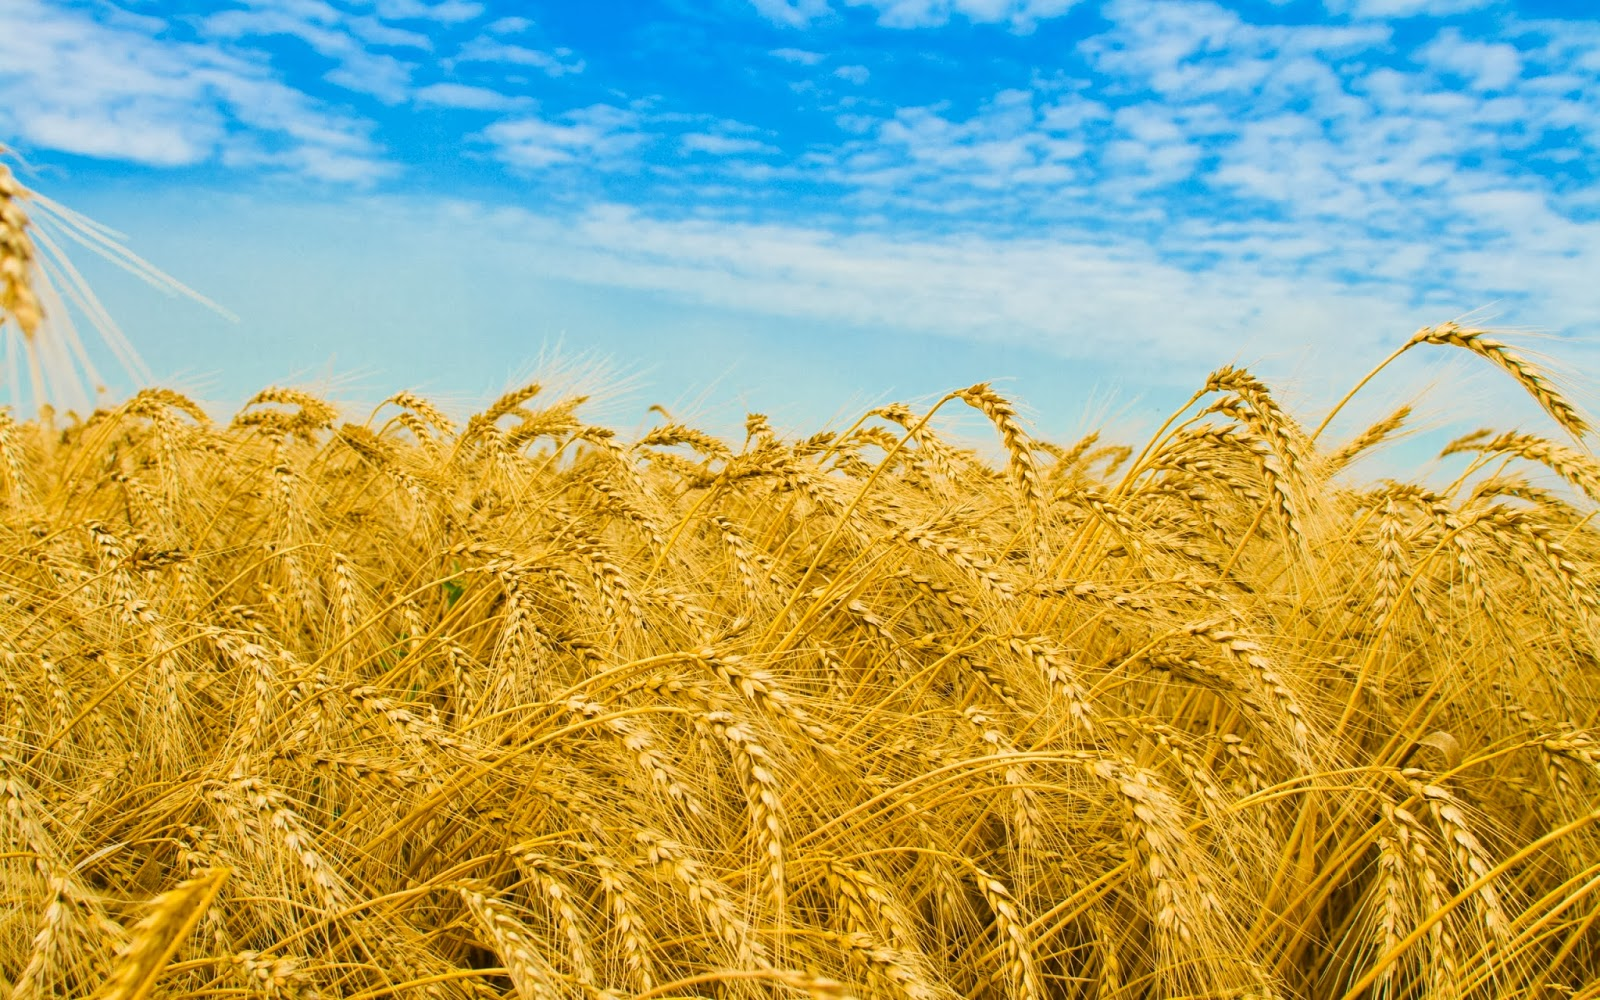 Cute Baby Wallpapers Free Download Desktop Wheat Field Wallpapers Most Beautiful Places In The